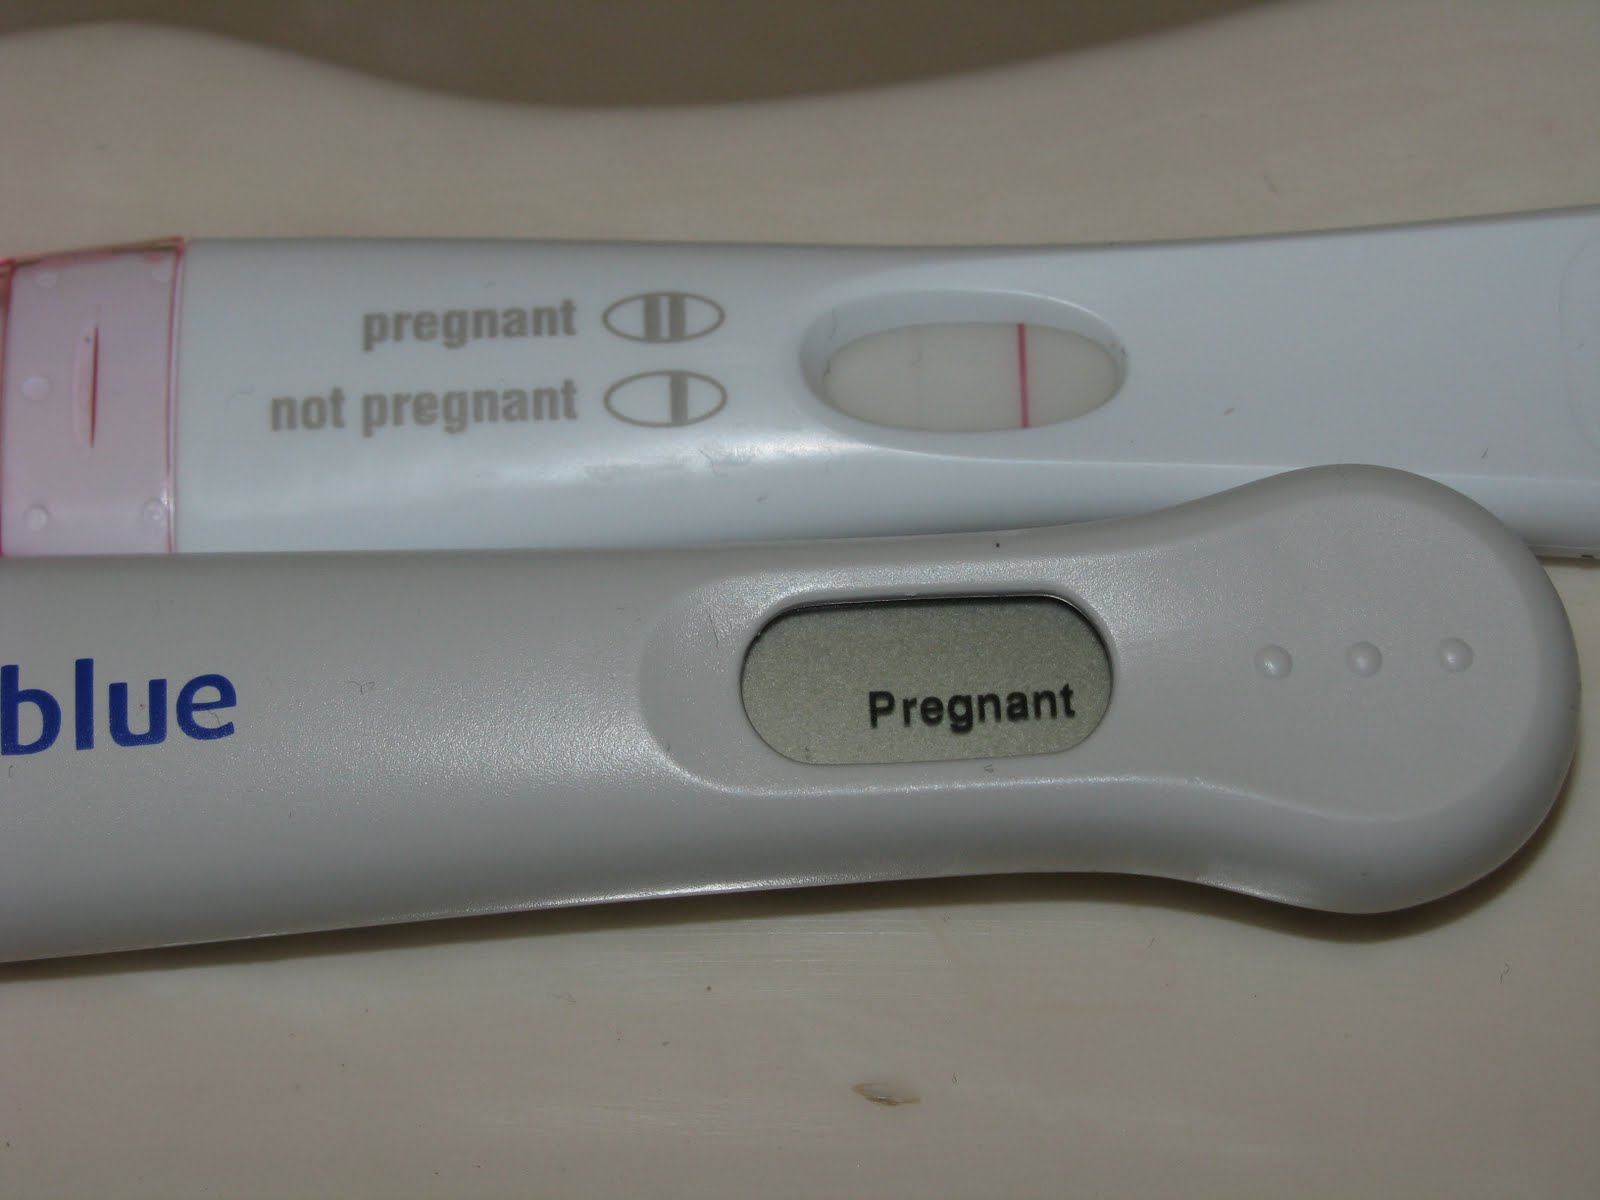 Clear blue pregnancy test lines